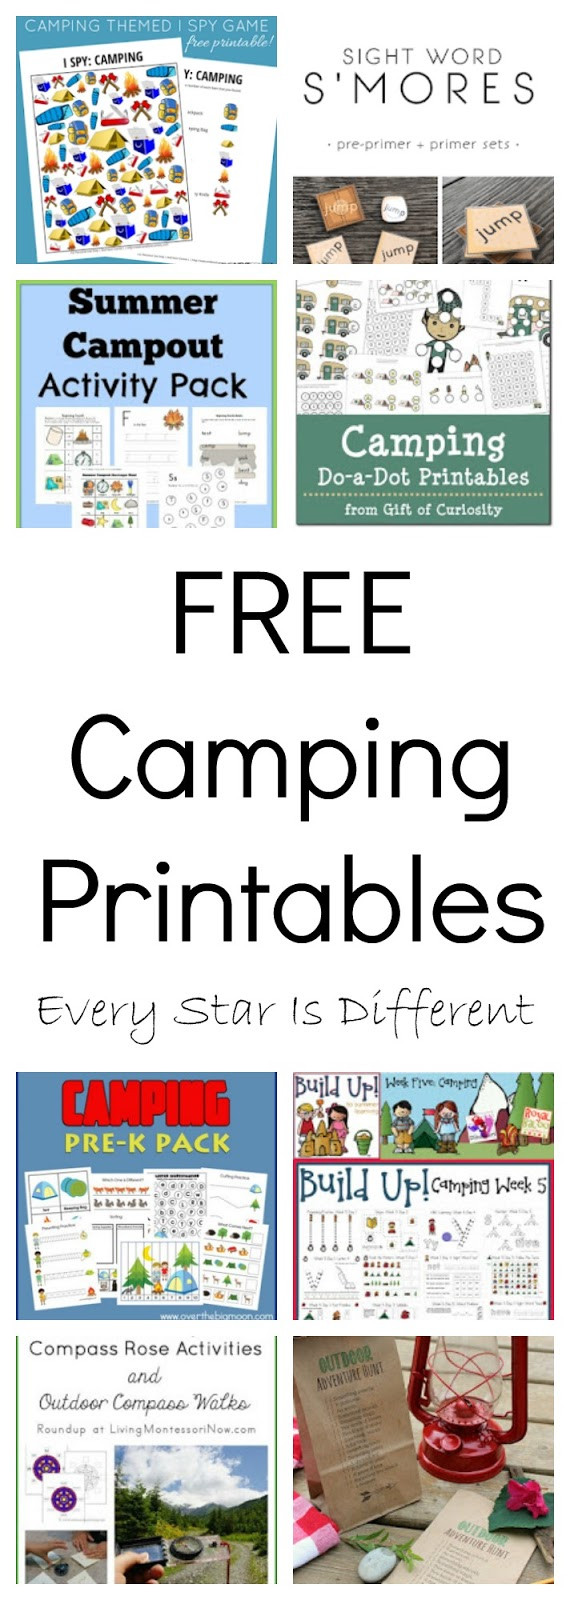 FREE Camping Printables Every Star Is Different